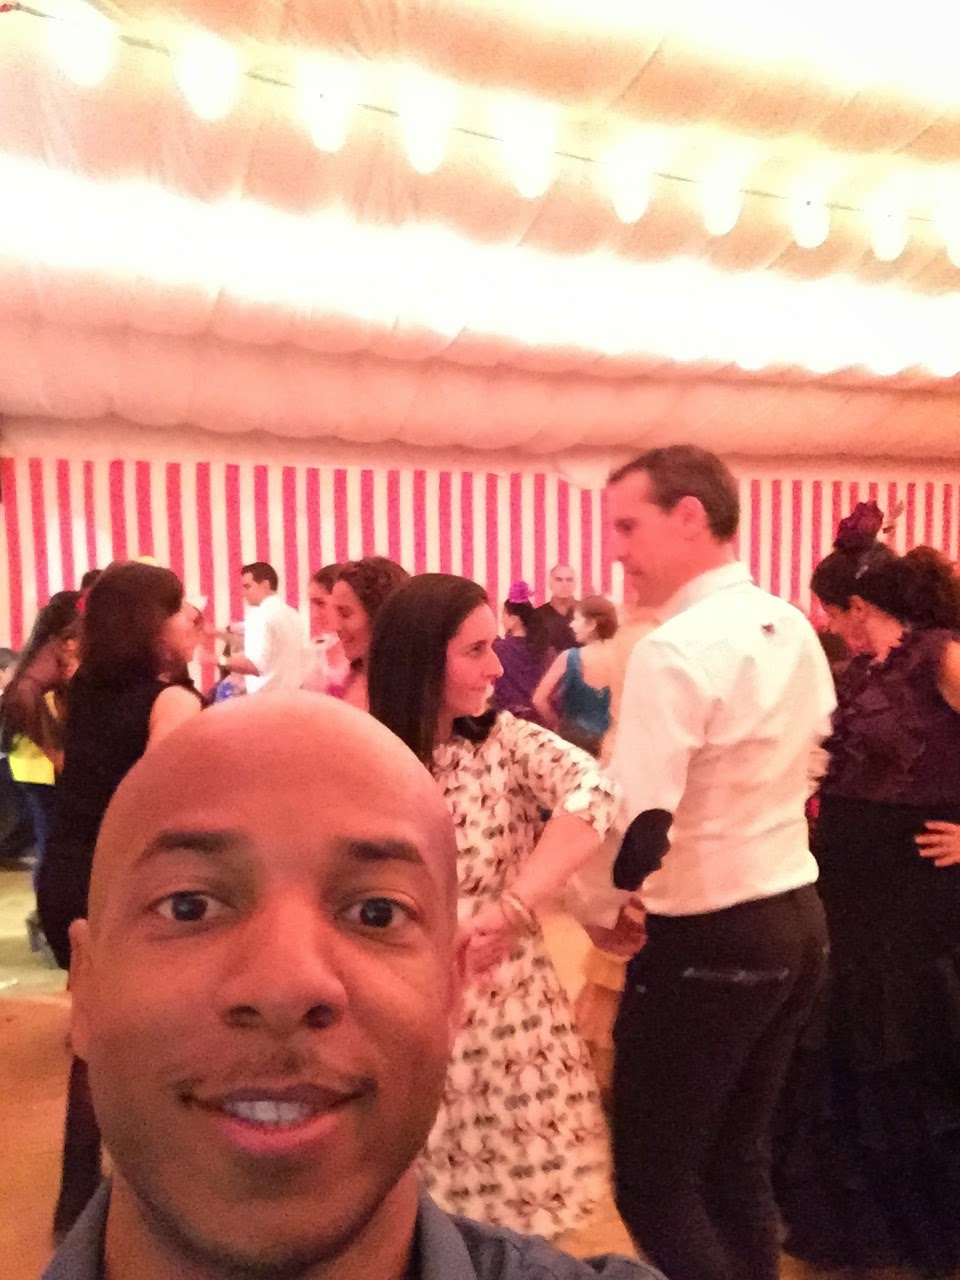 ...or taking selfies with professionals in the background